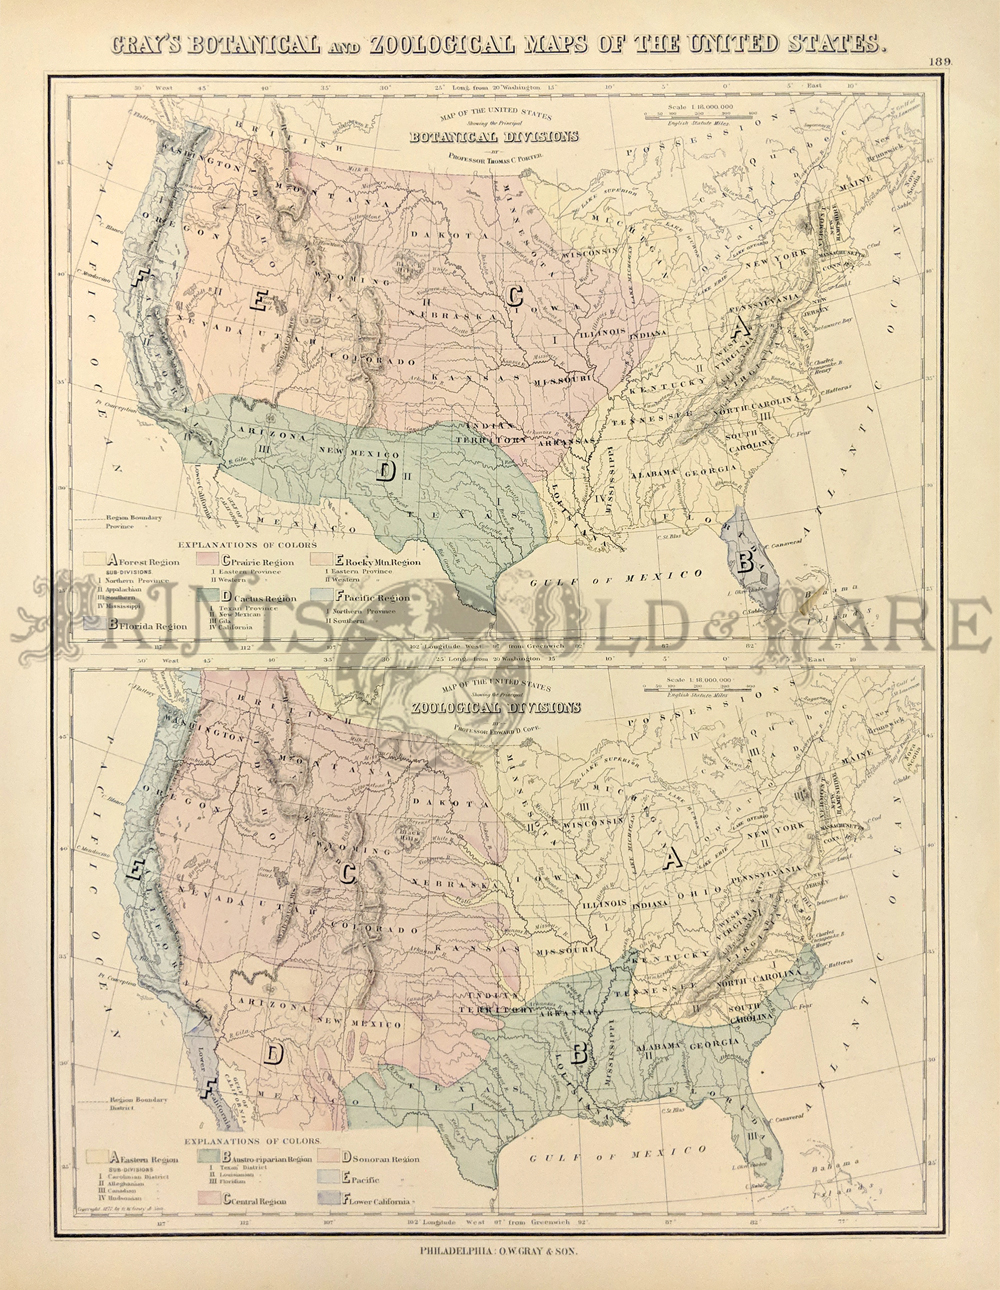 1878 Botanical Zoological Maps Of The Usa These Two Maps Of The United States Were Published In Gray S Atlas Of 1876 The Top Map Is Titled Map Of The